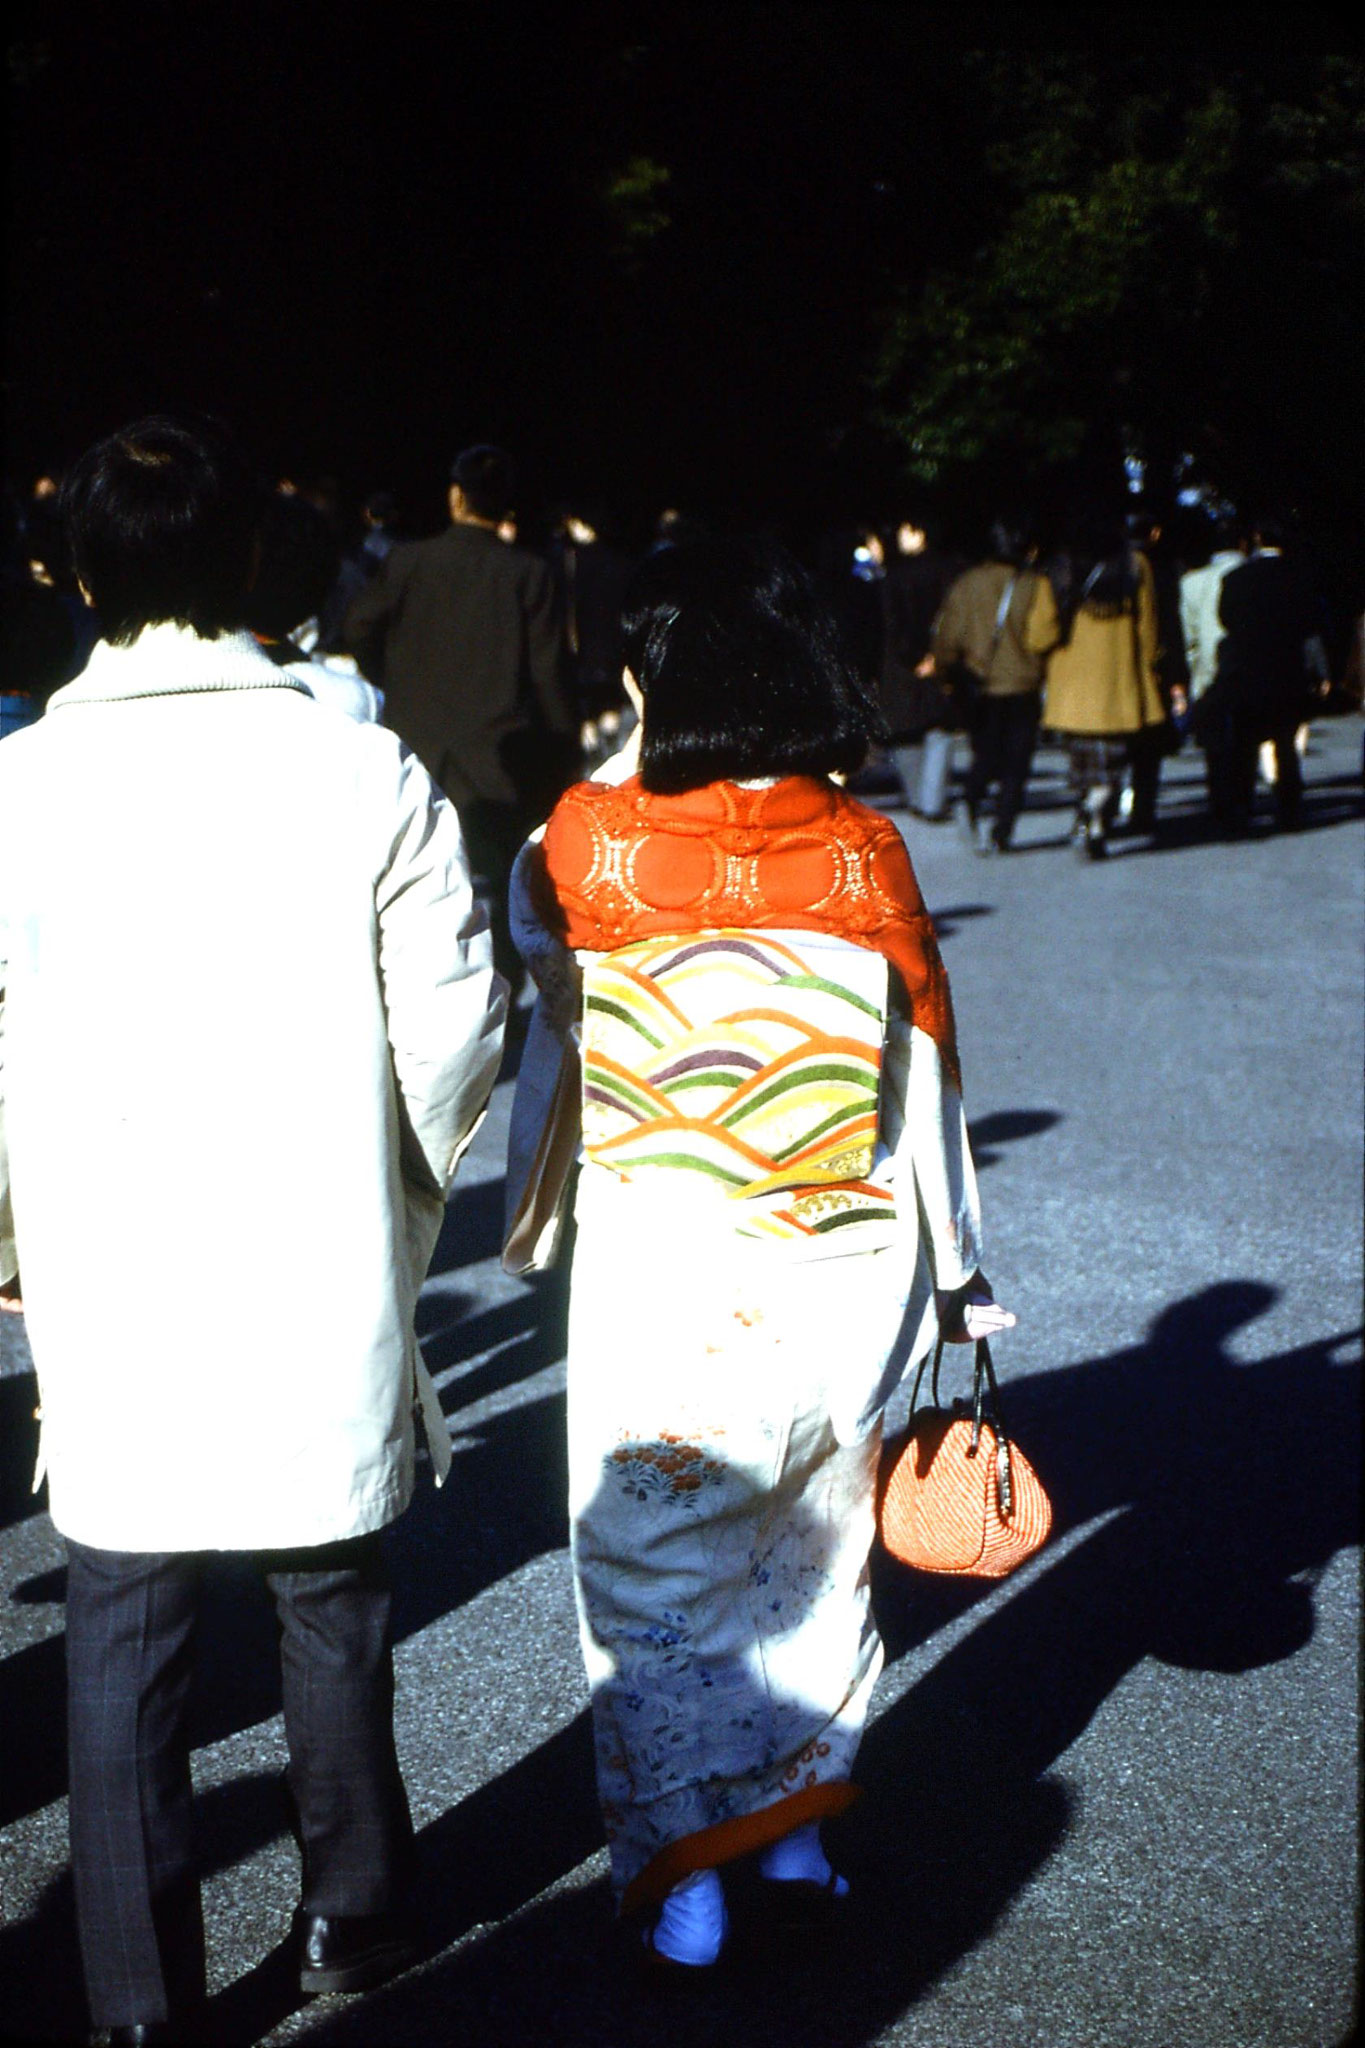 2/1/1989: 28: Imperial Palace